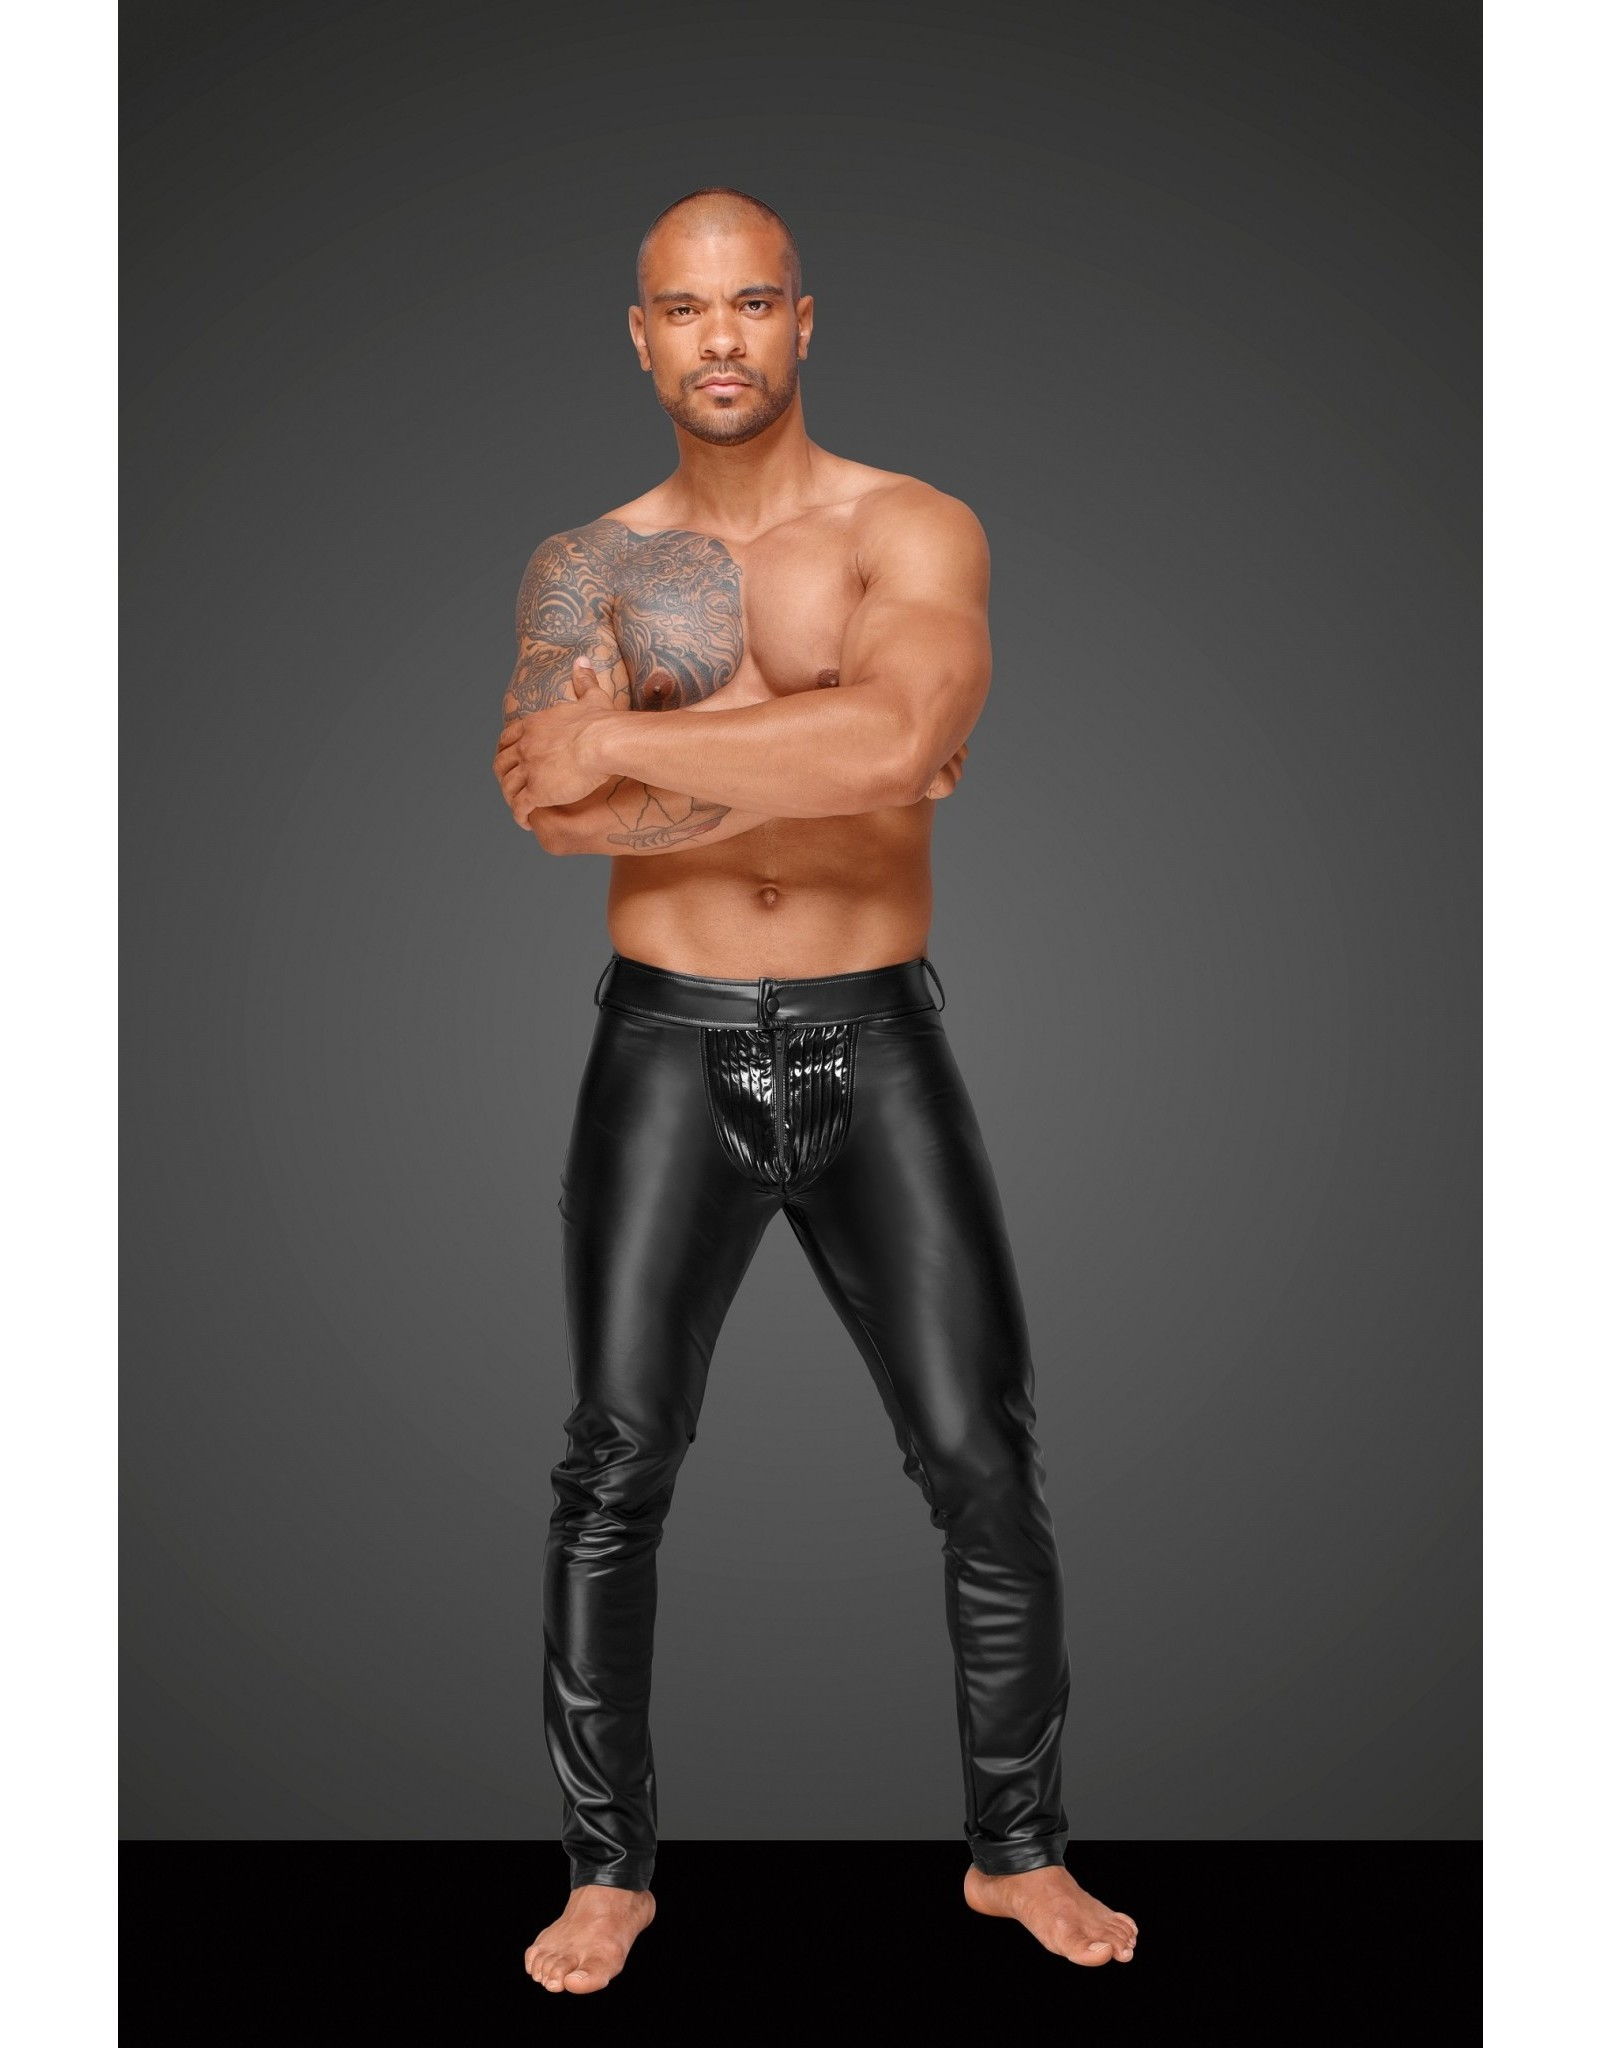 NOIR HANDMADE - POWER WET LOOK MEN'S TROUSERS WITH WITH PVC - XL